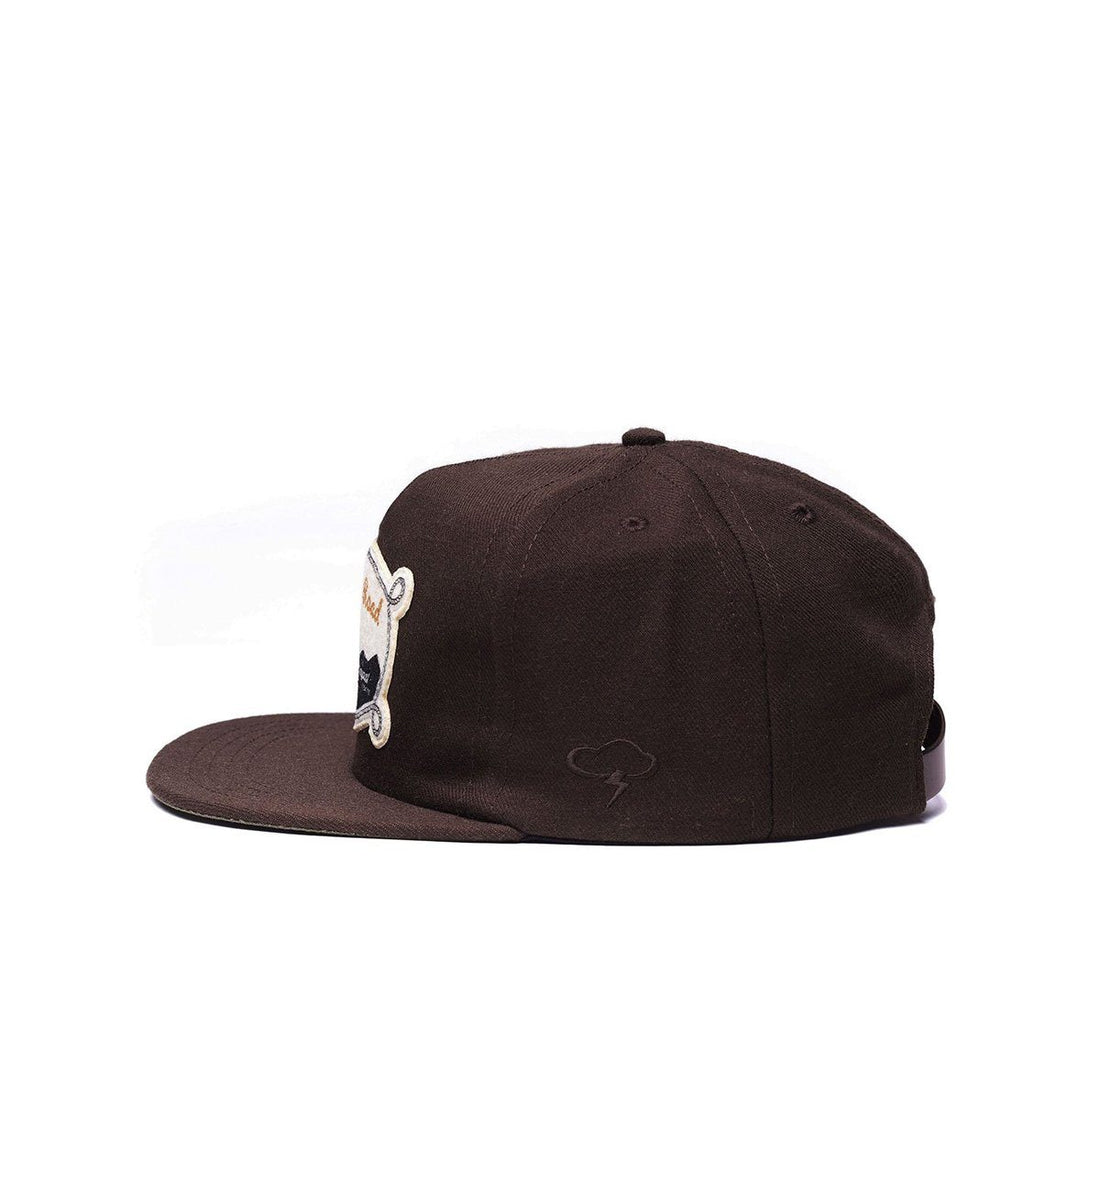 The Ampal Creative On the Road - Strapback - Headwear - Iron and Resin